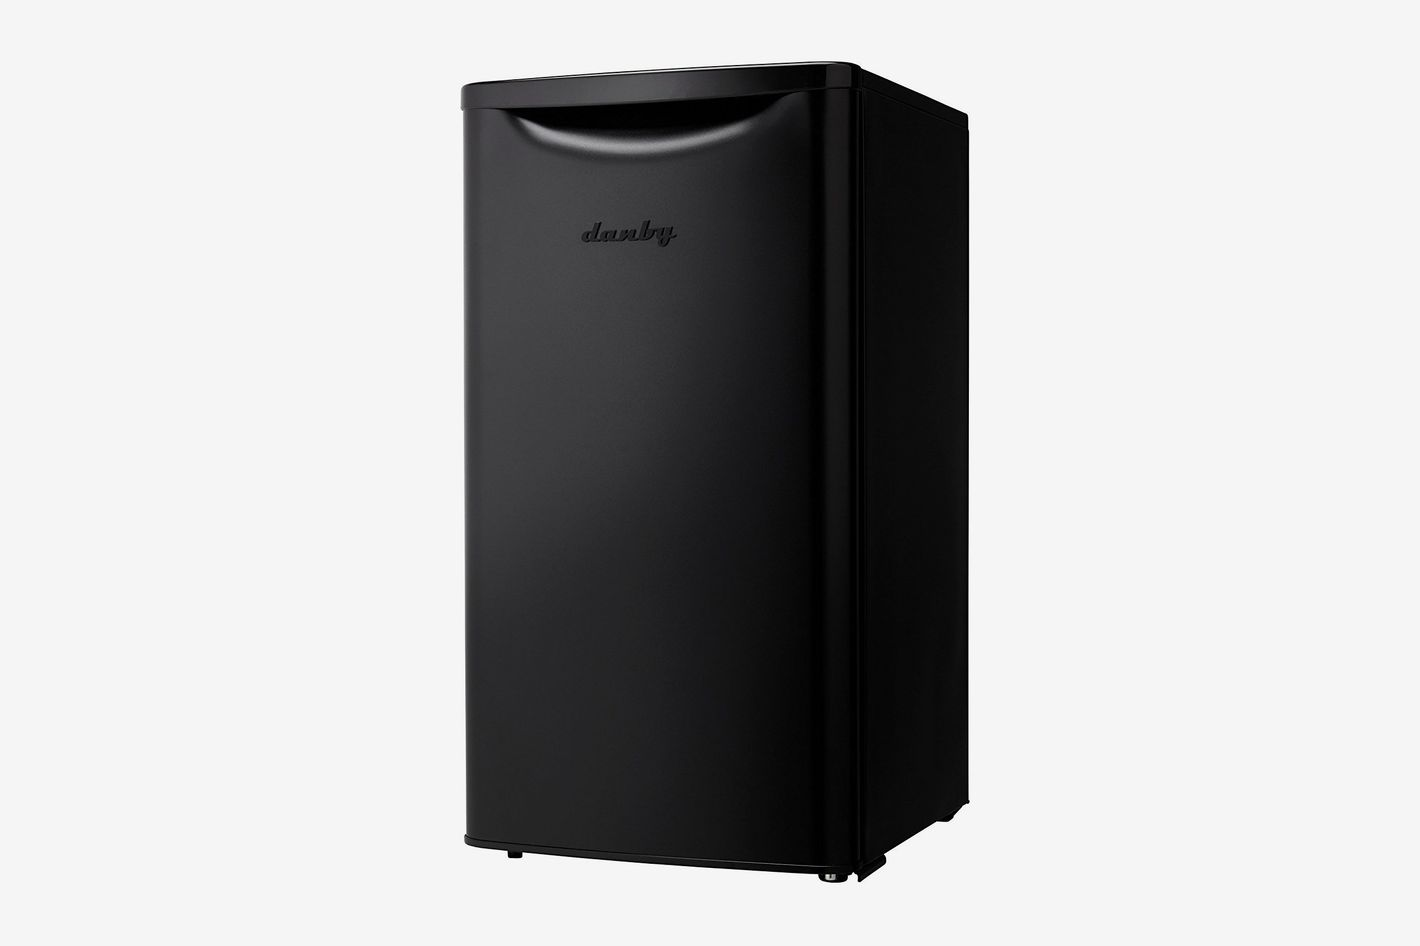 An all black mini fridge with a hollowed-out handle on the top